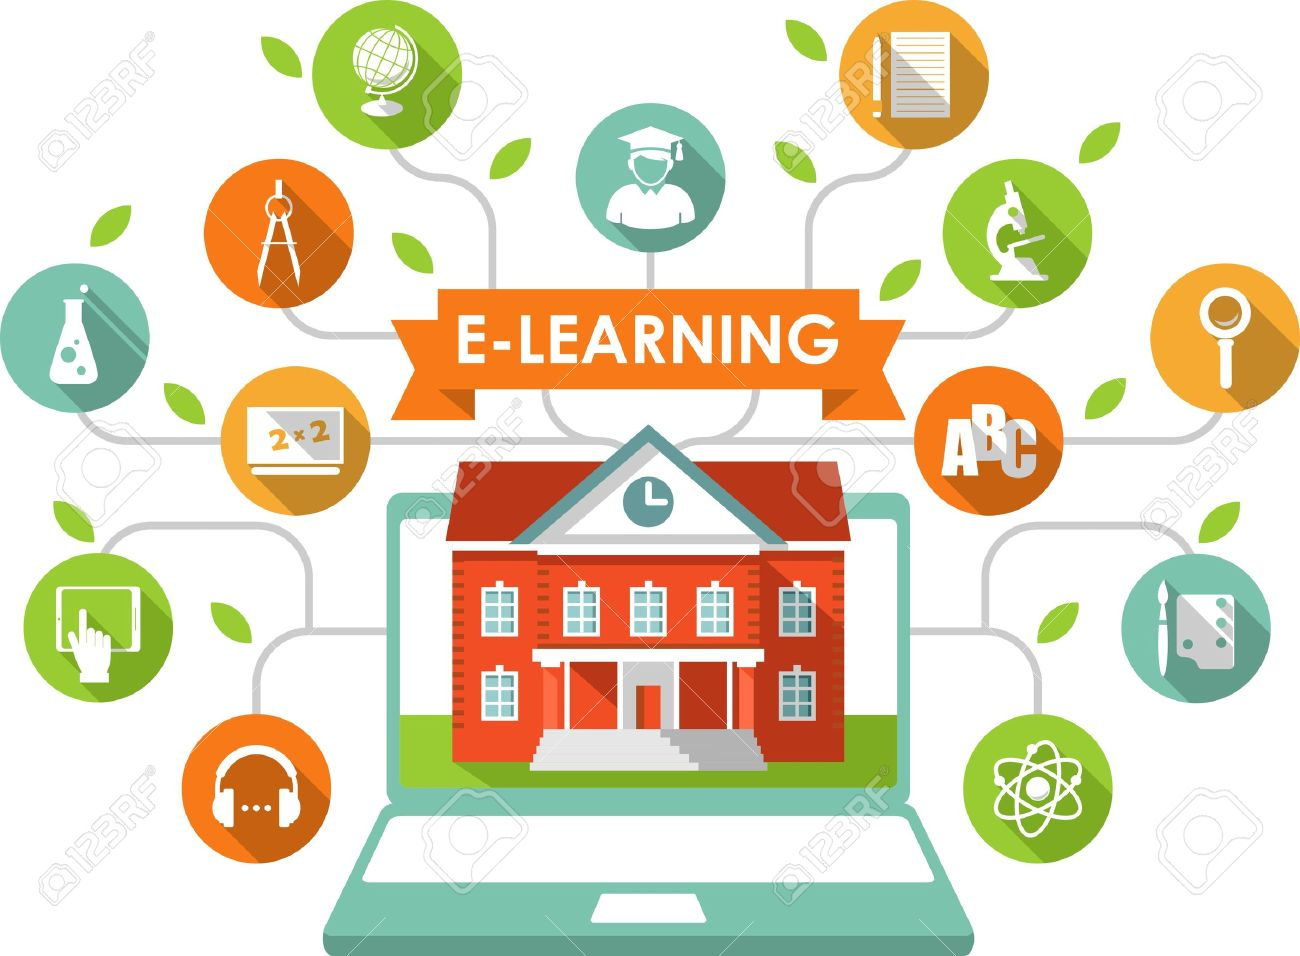 30782 Elearning Stock Illustrations Cliparts And Royalty Free for elearning clipart free for your reference